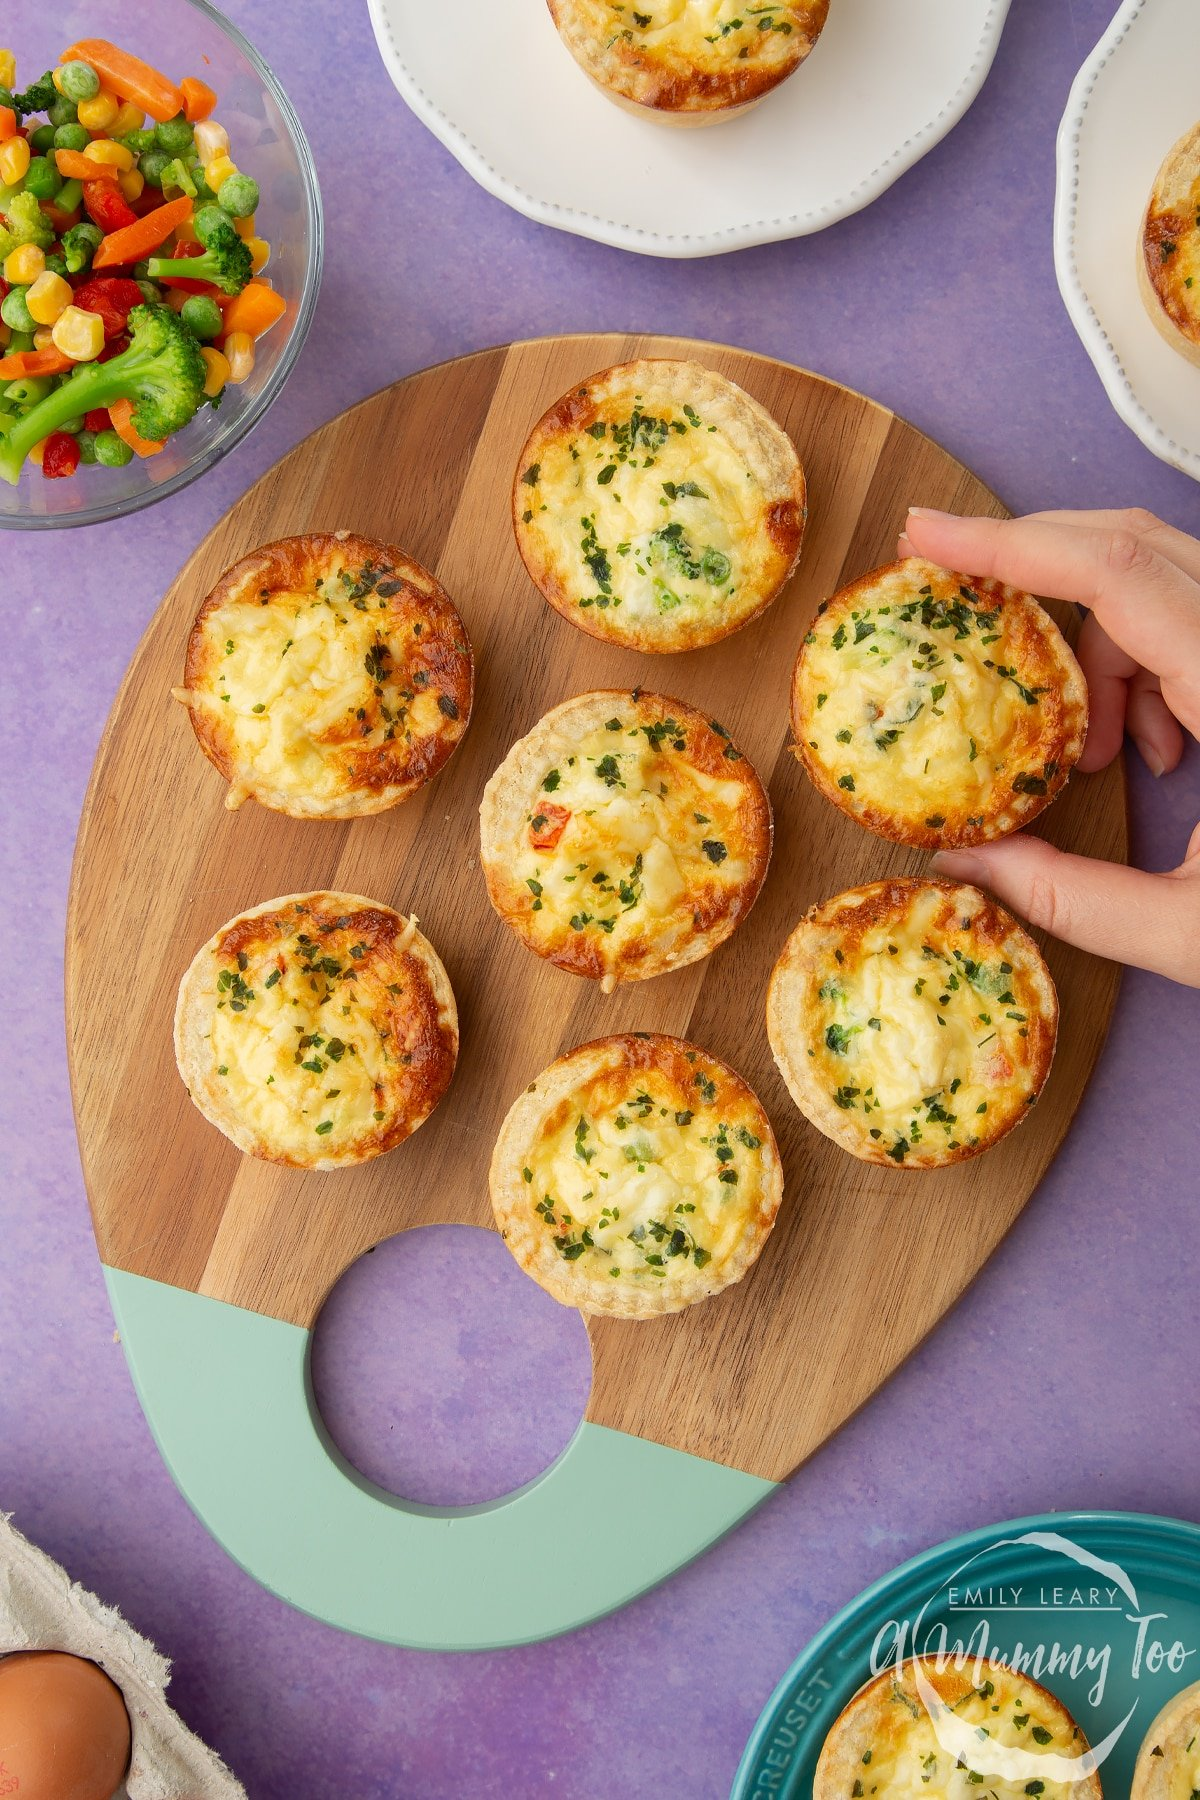 Mini vegetable quiches arranged on a wooden board. A hand reaches to take one.